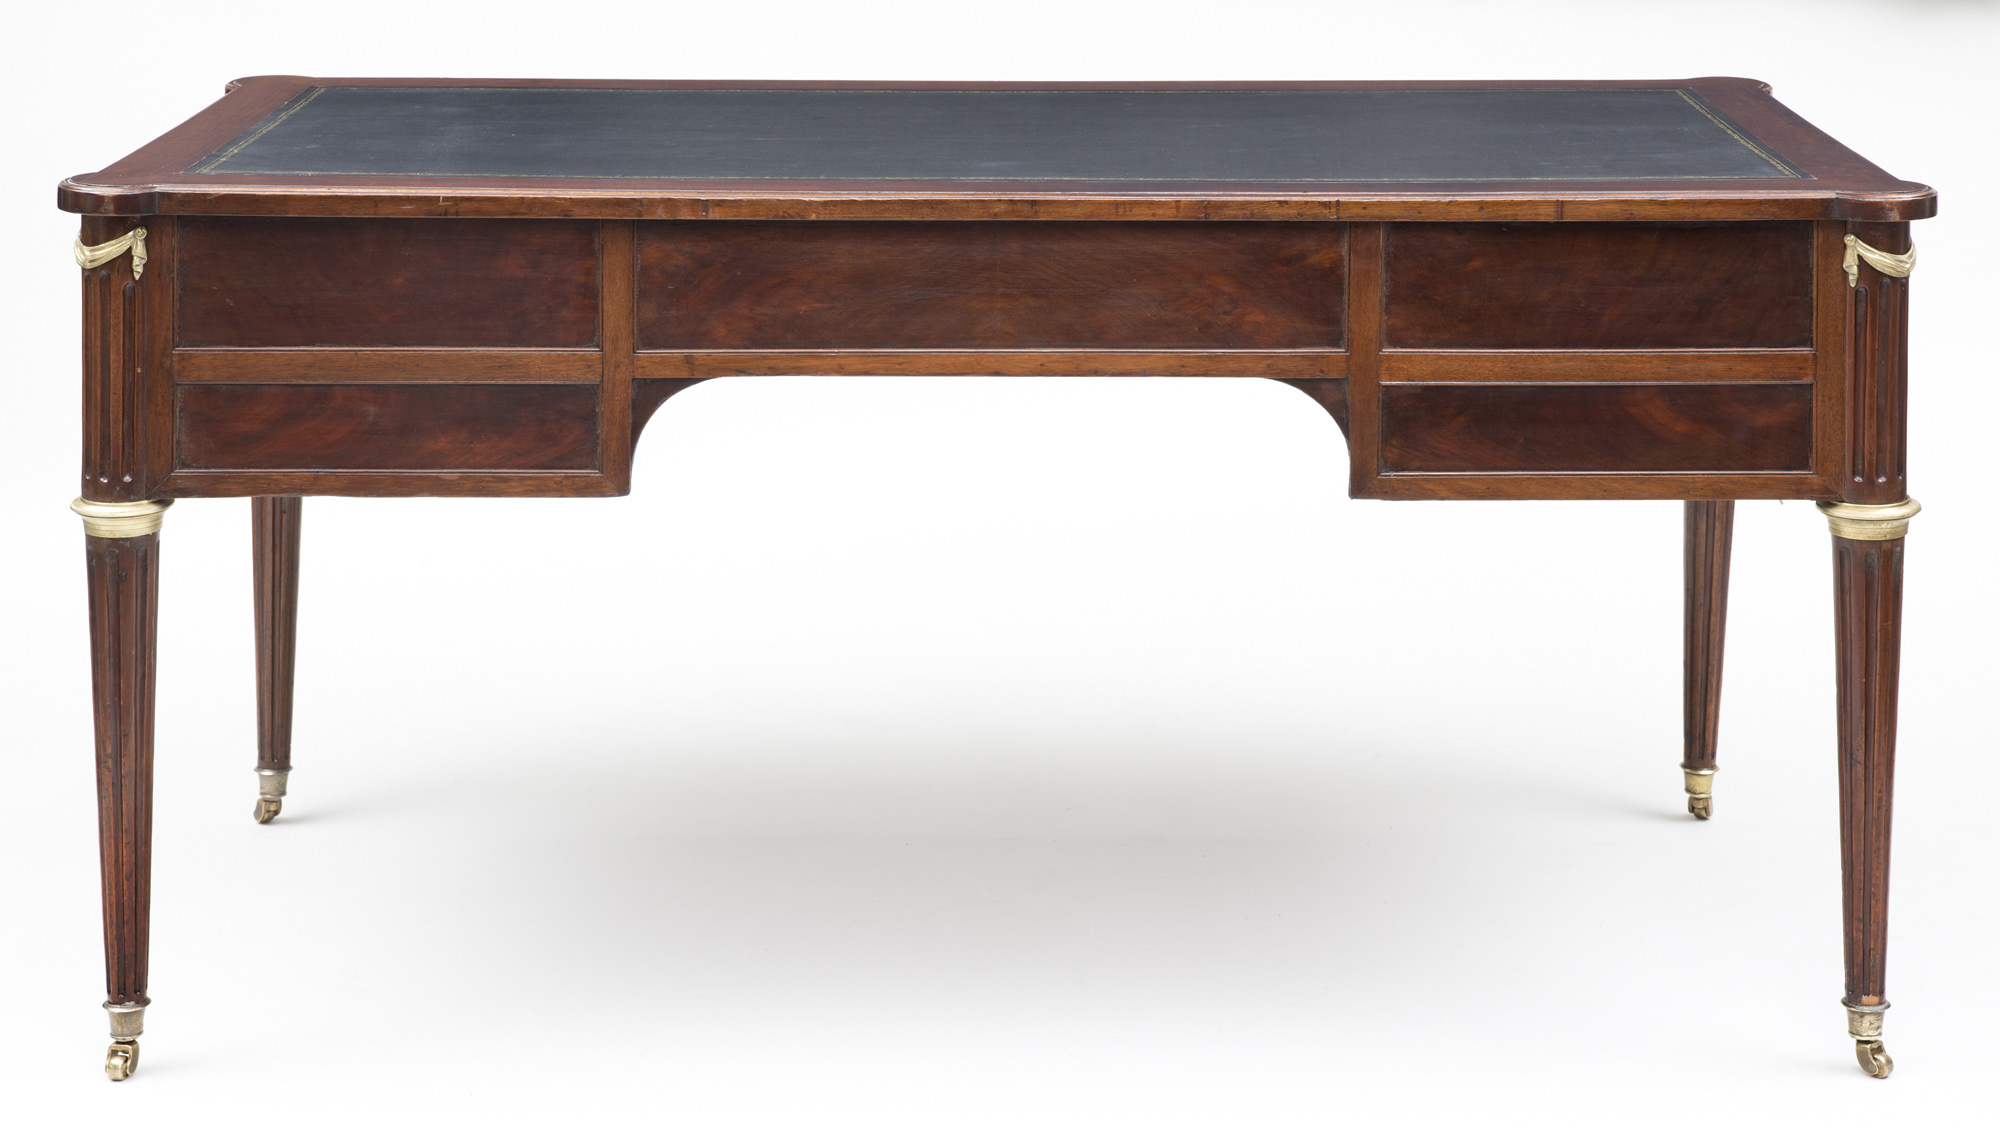 Product french louis xvi mahogany bureau plat circa 1790 for Bureau louis xvi